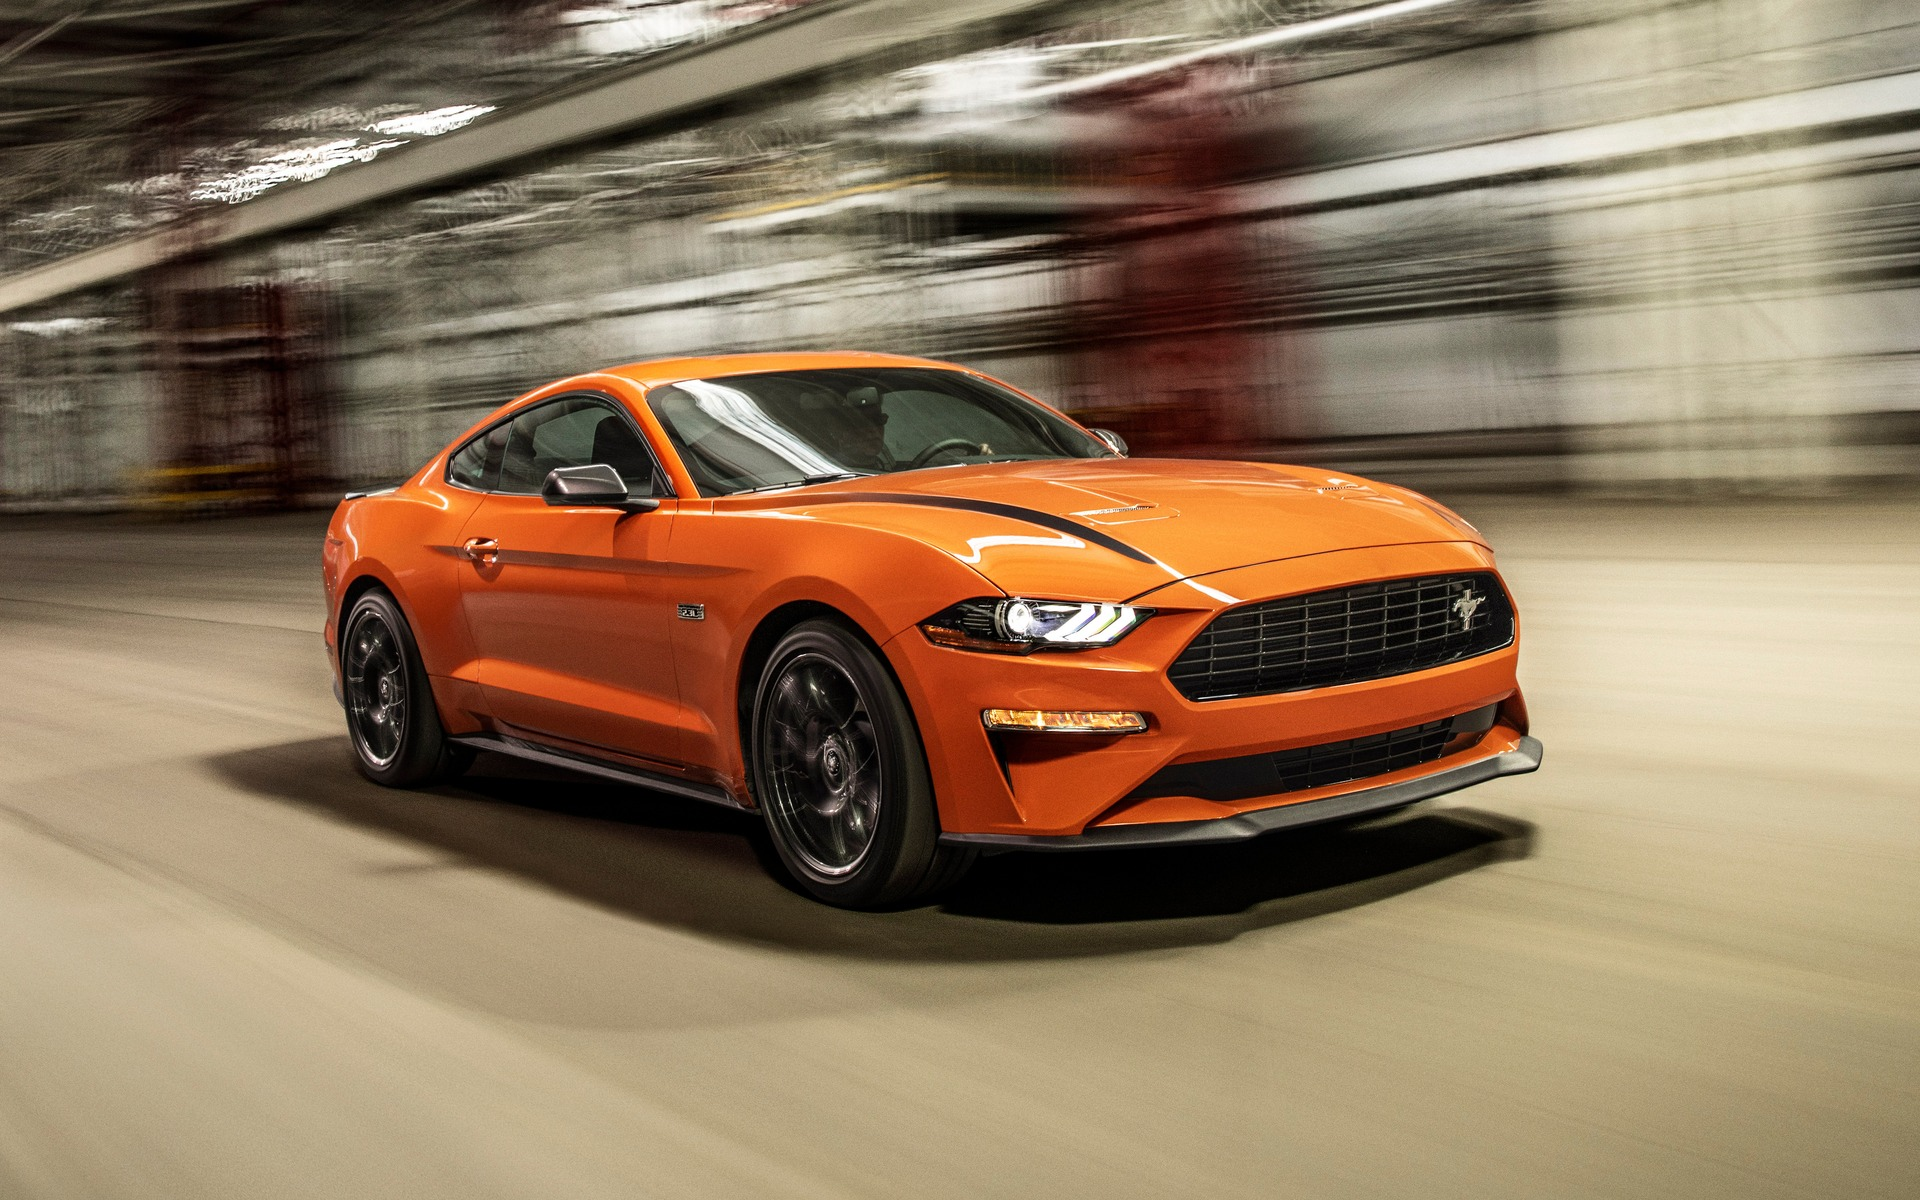 Ford Mustang Ecoboost >> New 2020 Ford Mustang Ecoboost High Performance Raises The Bar The